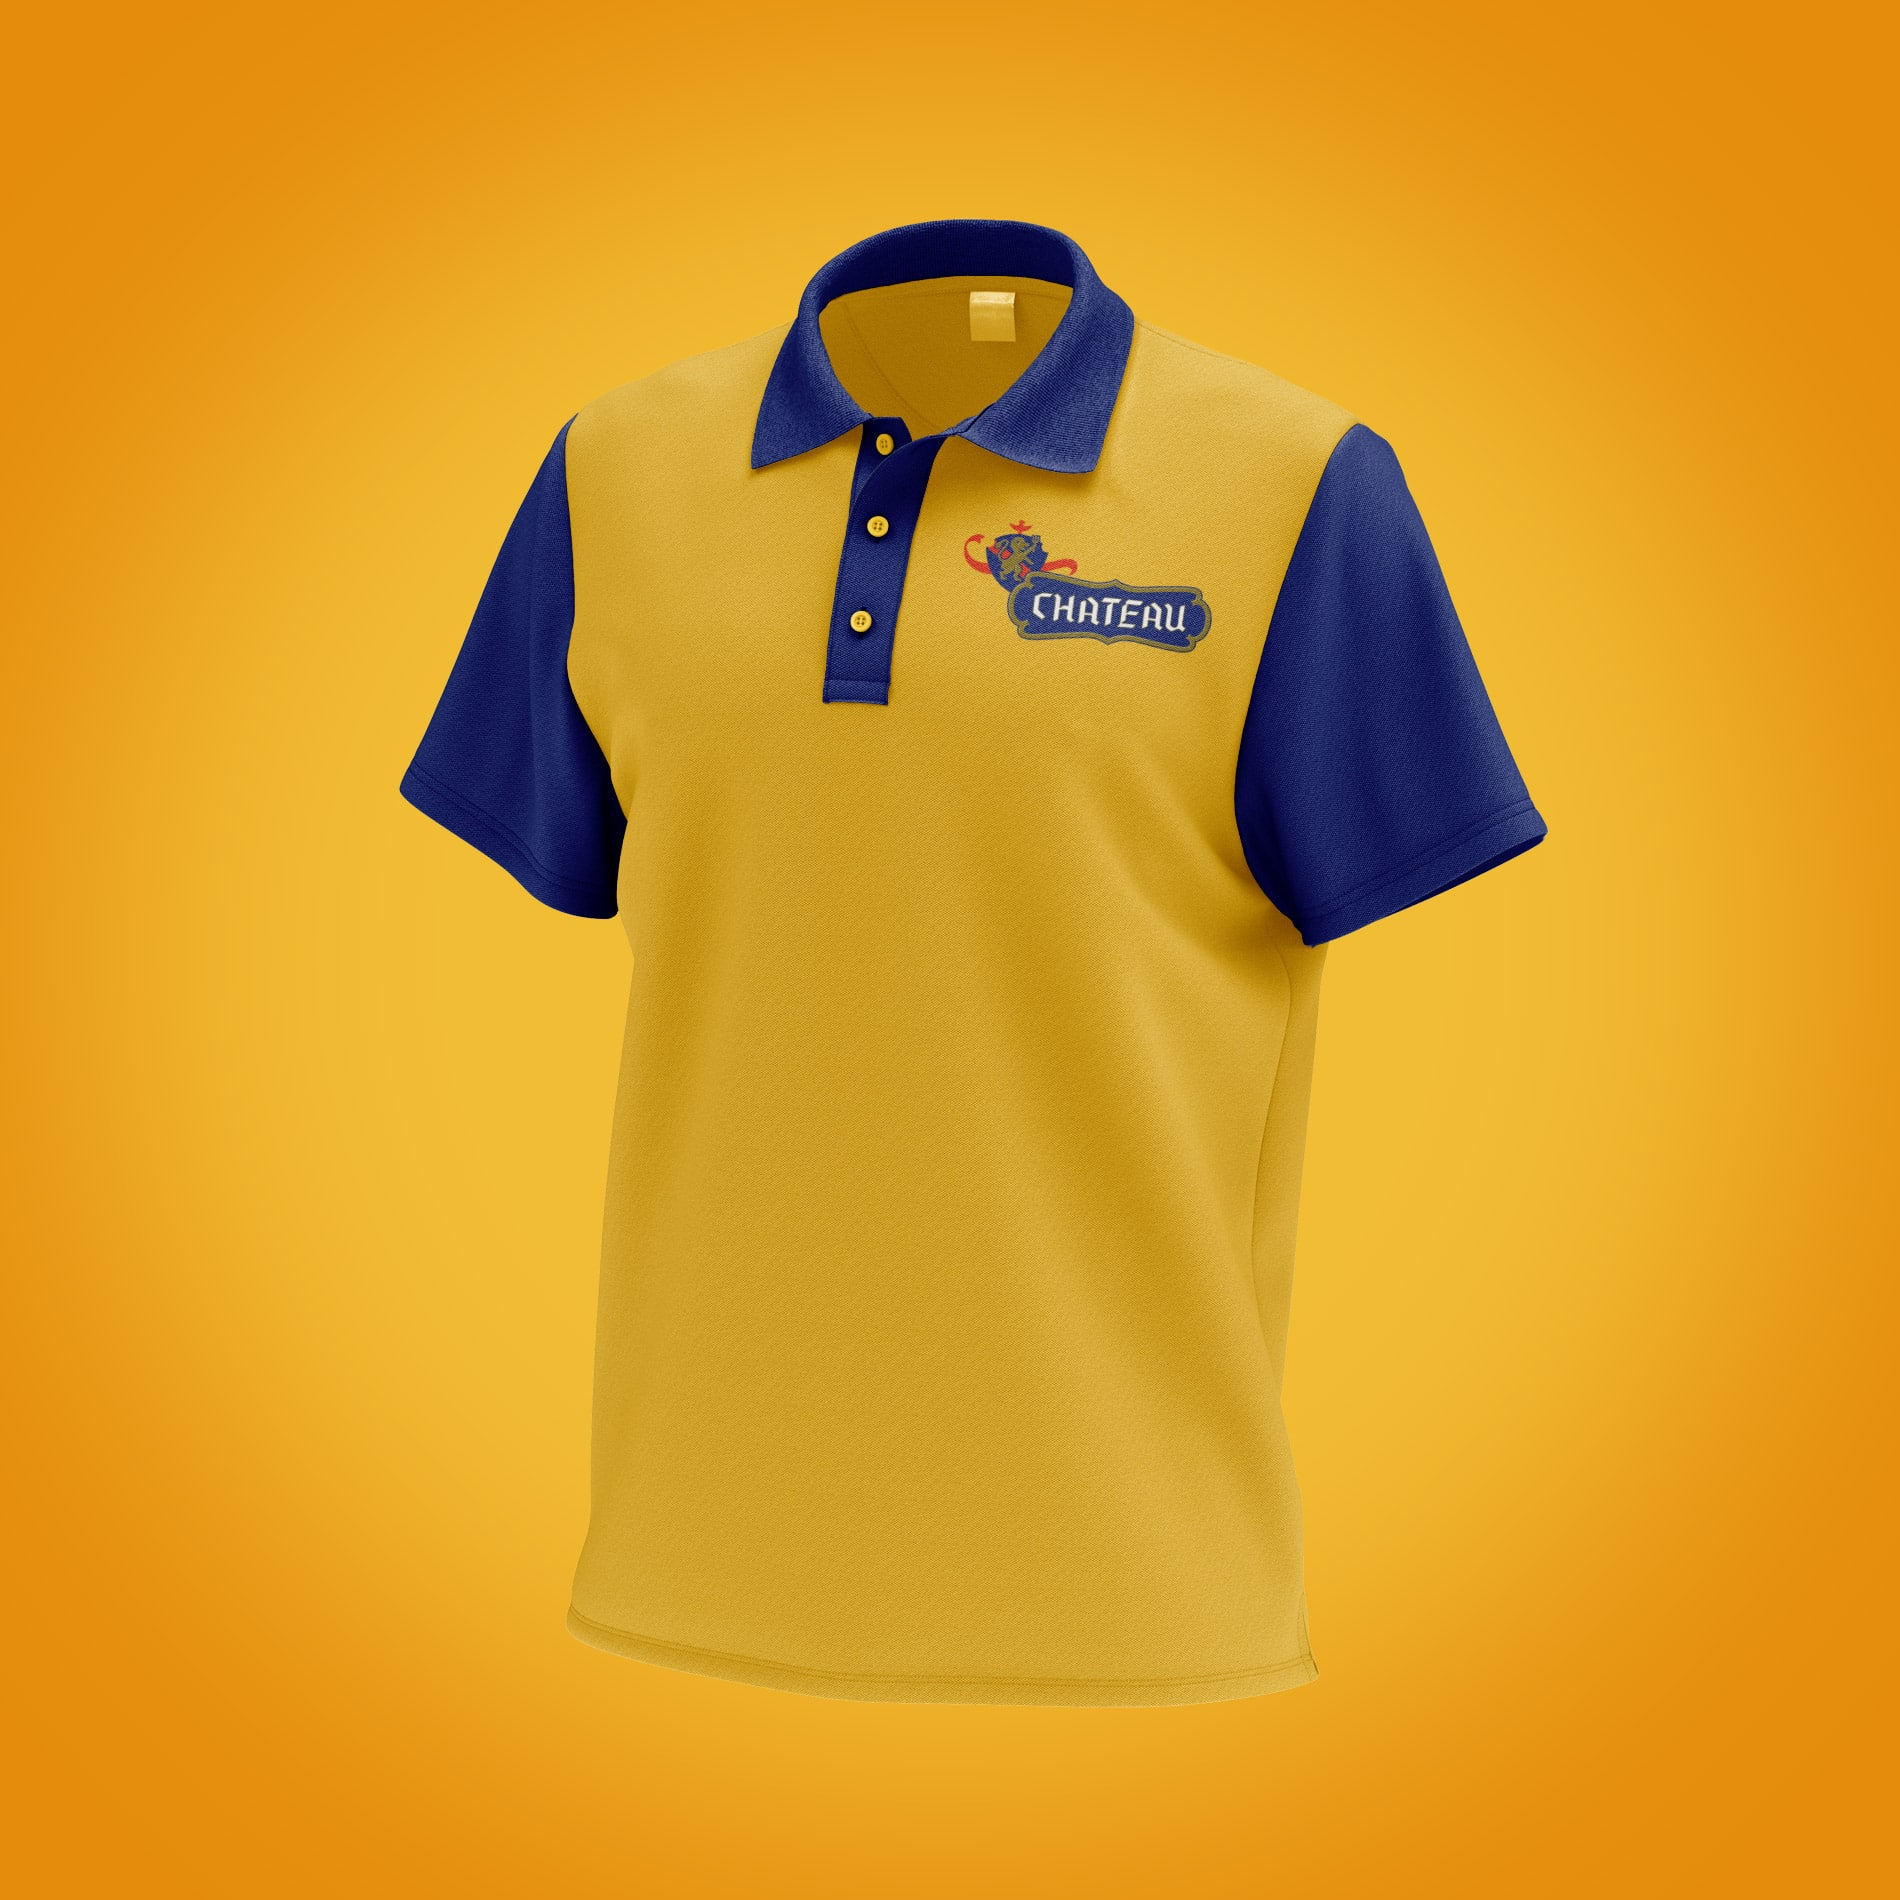 Chateau branded Polo Shirt Design